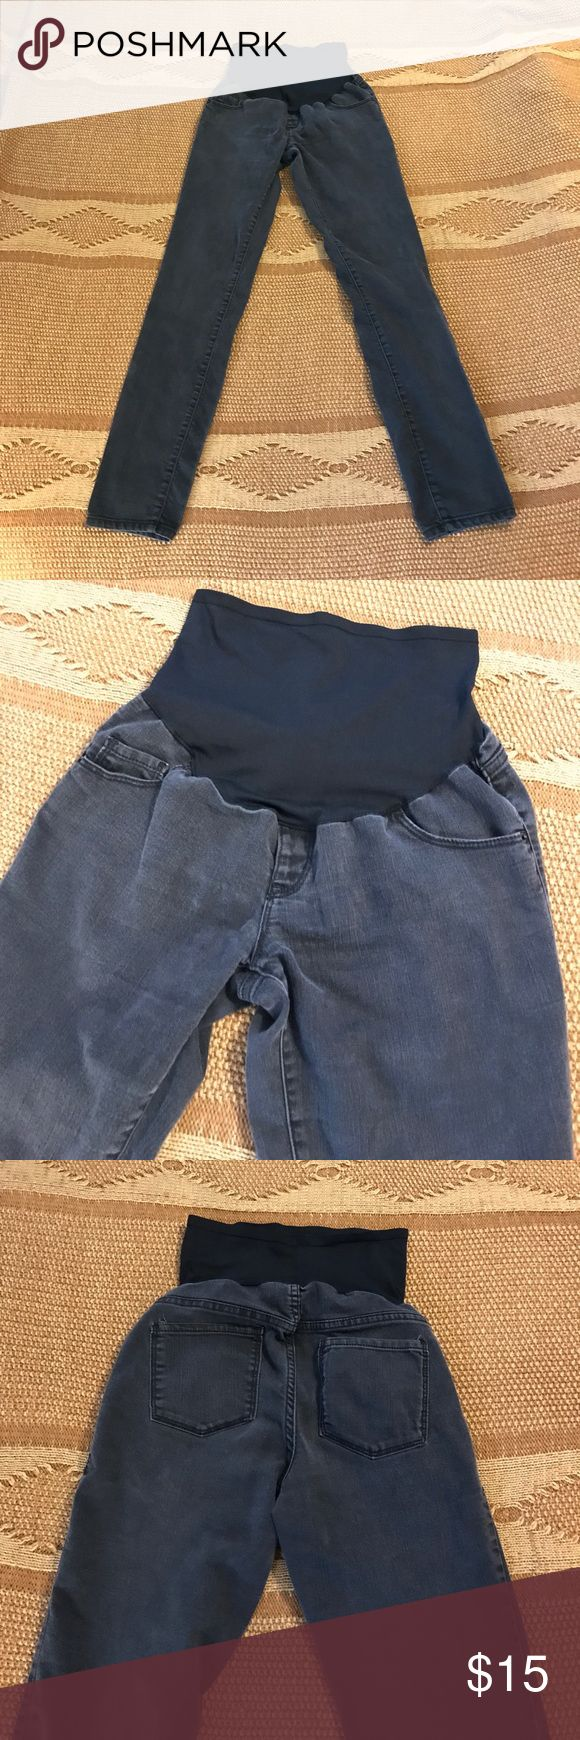 Old Navy maternity jeans Dark gray jeans, black over the tummy band. Size 4. Old Navy Jeans Skinny